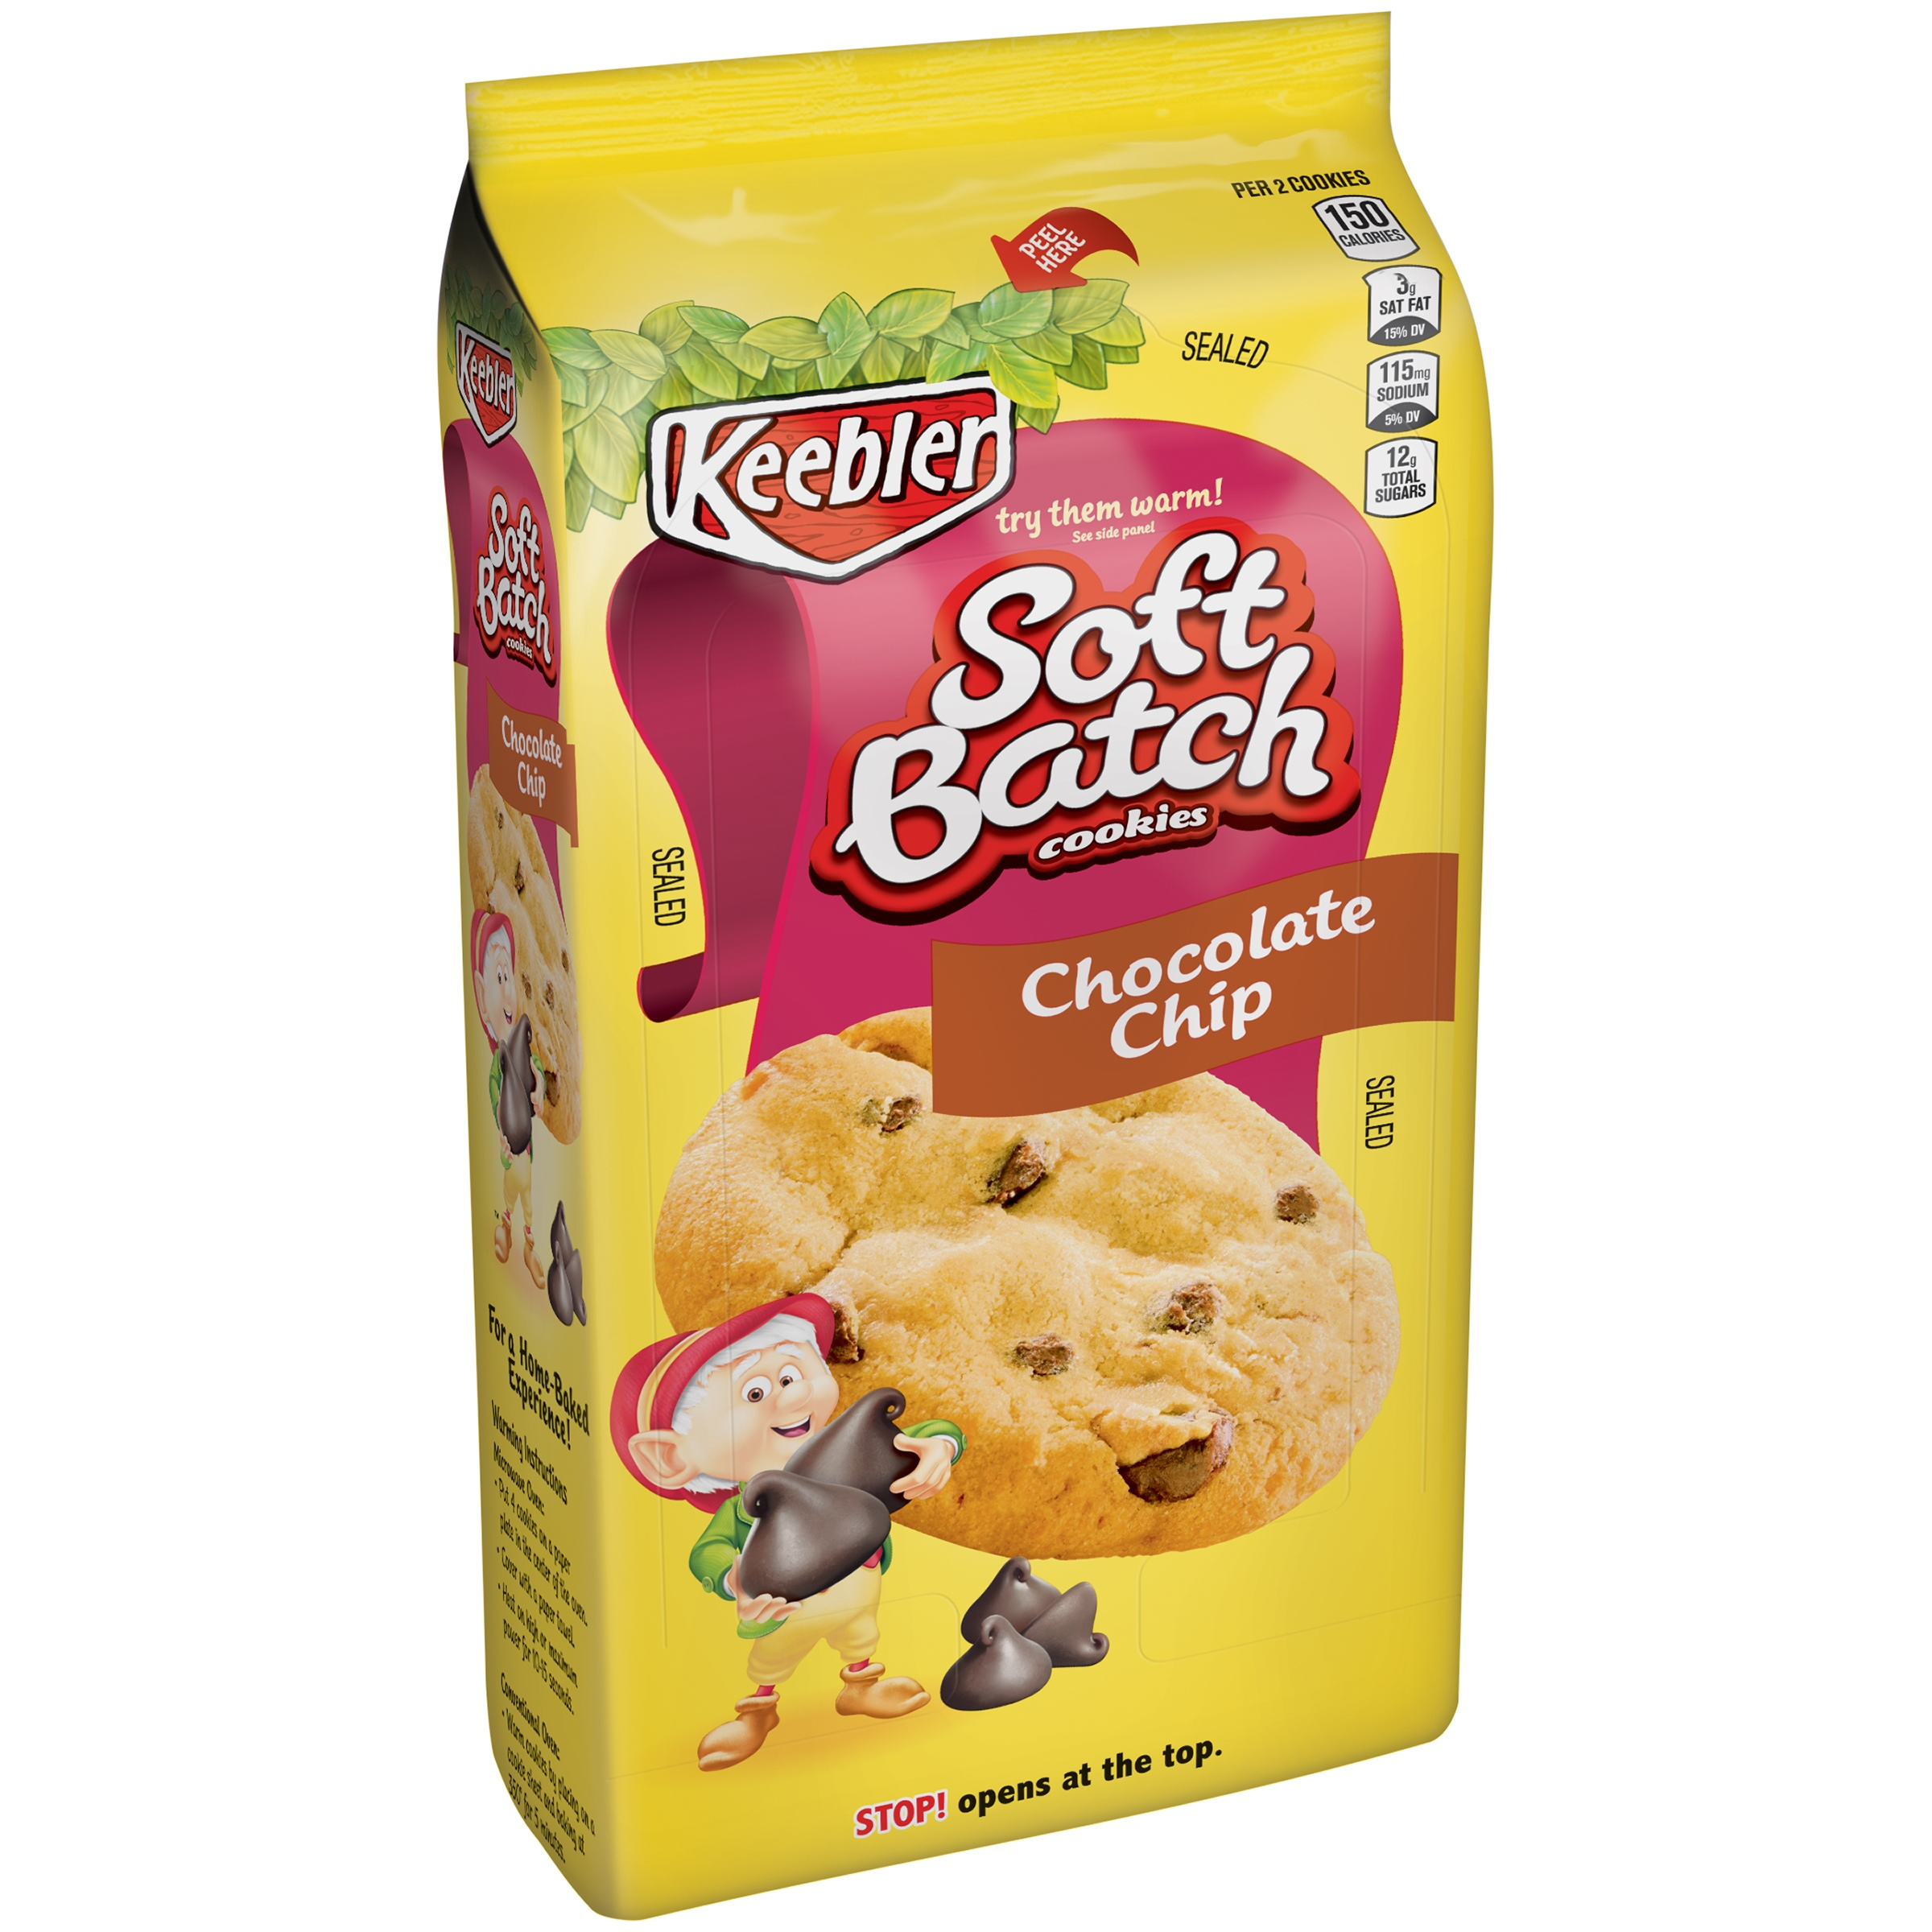 Keebler Soft Batch Cookies Chocolate Chip 15 oz. Pack